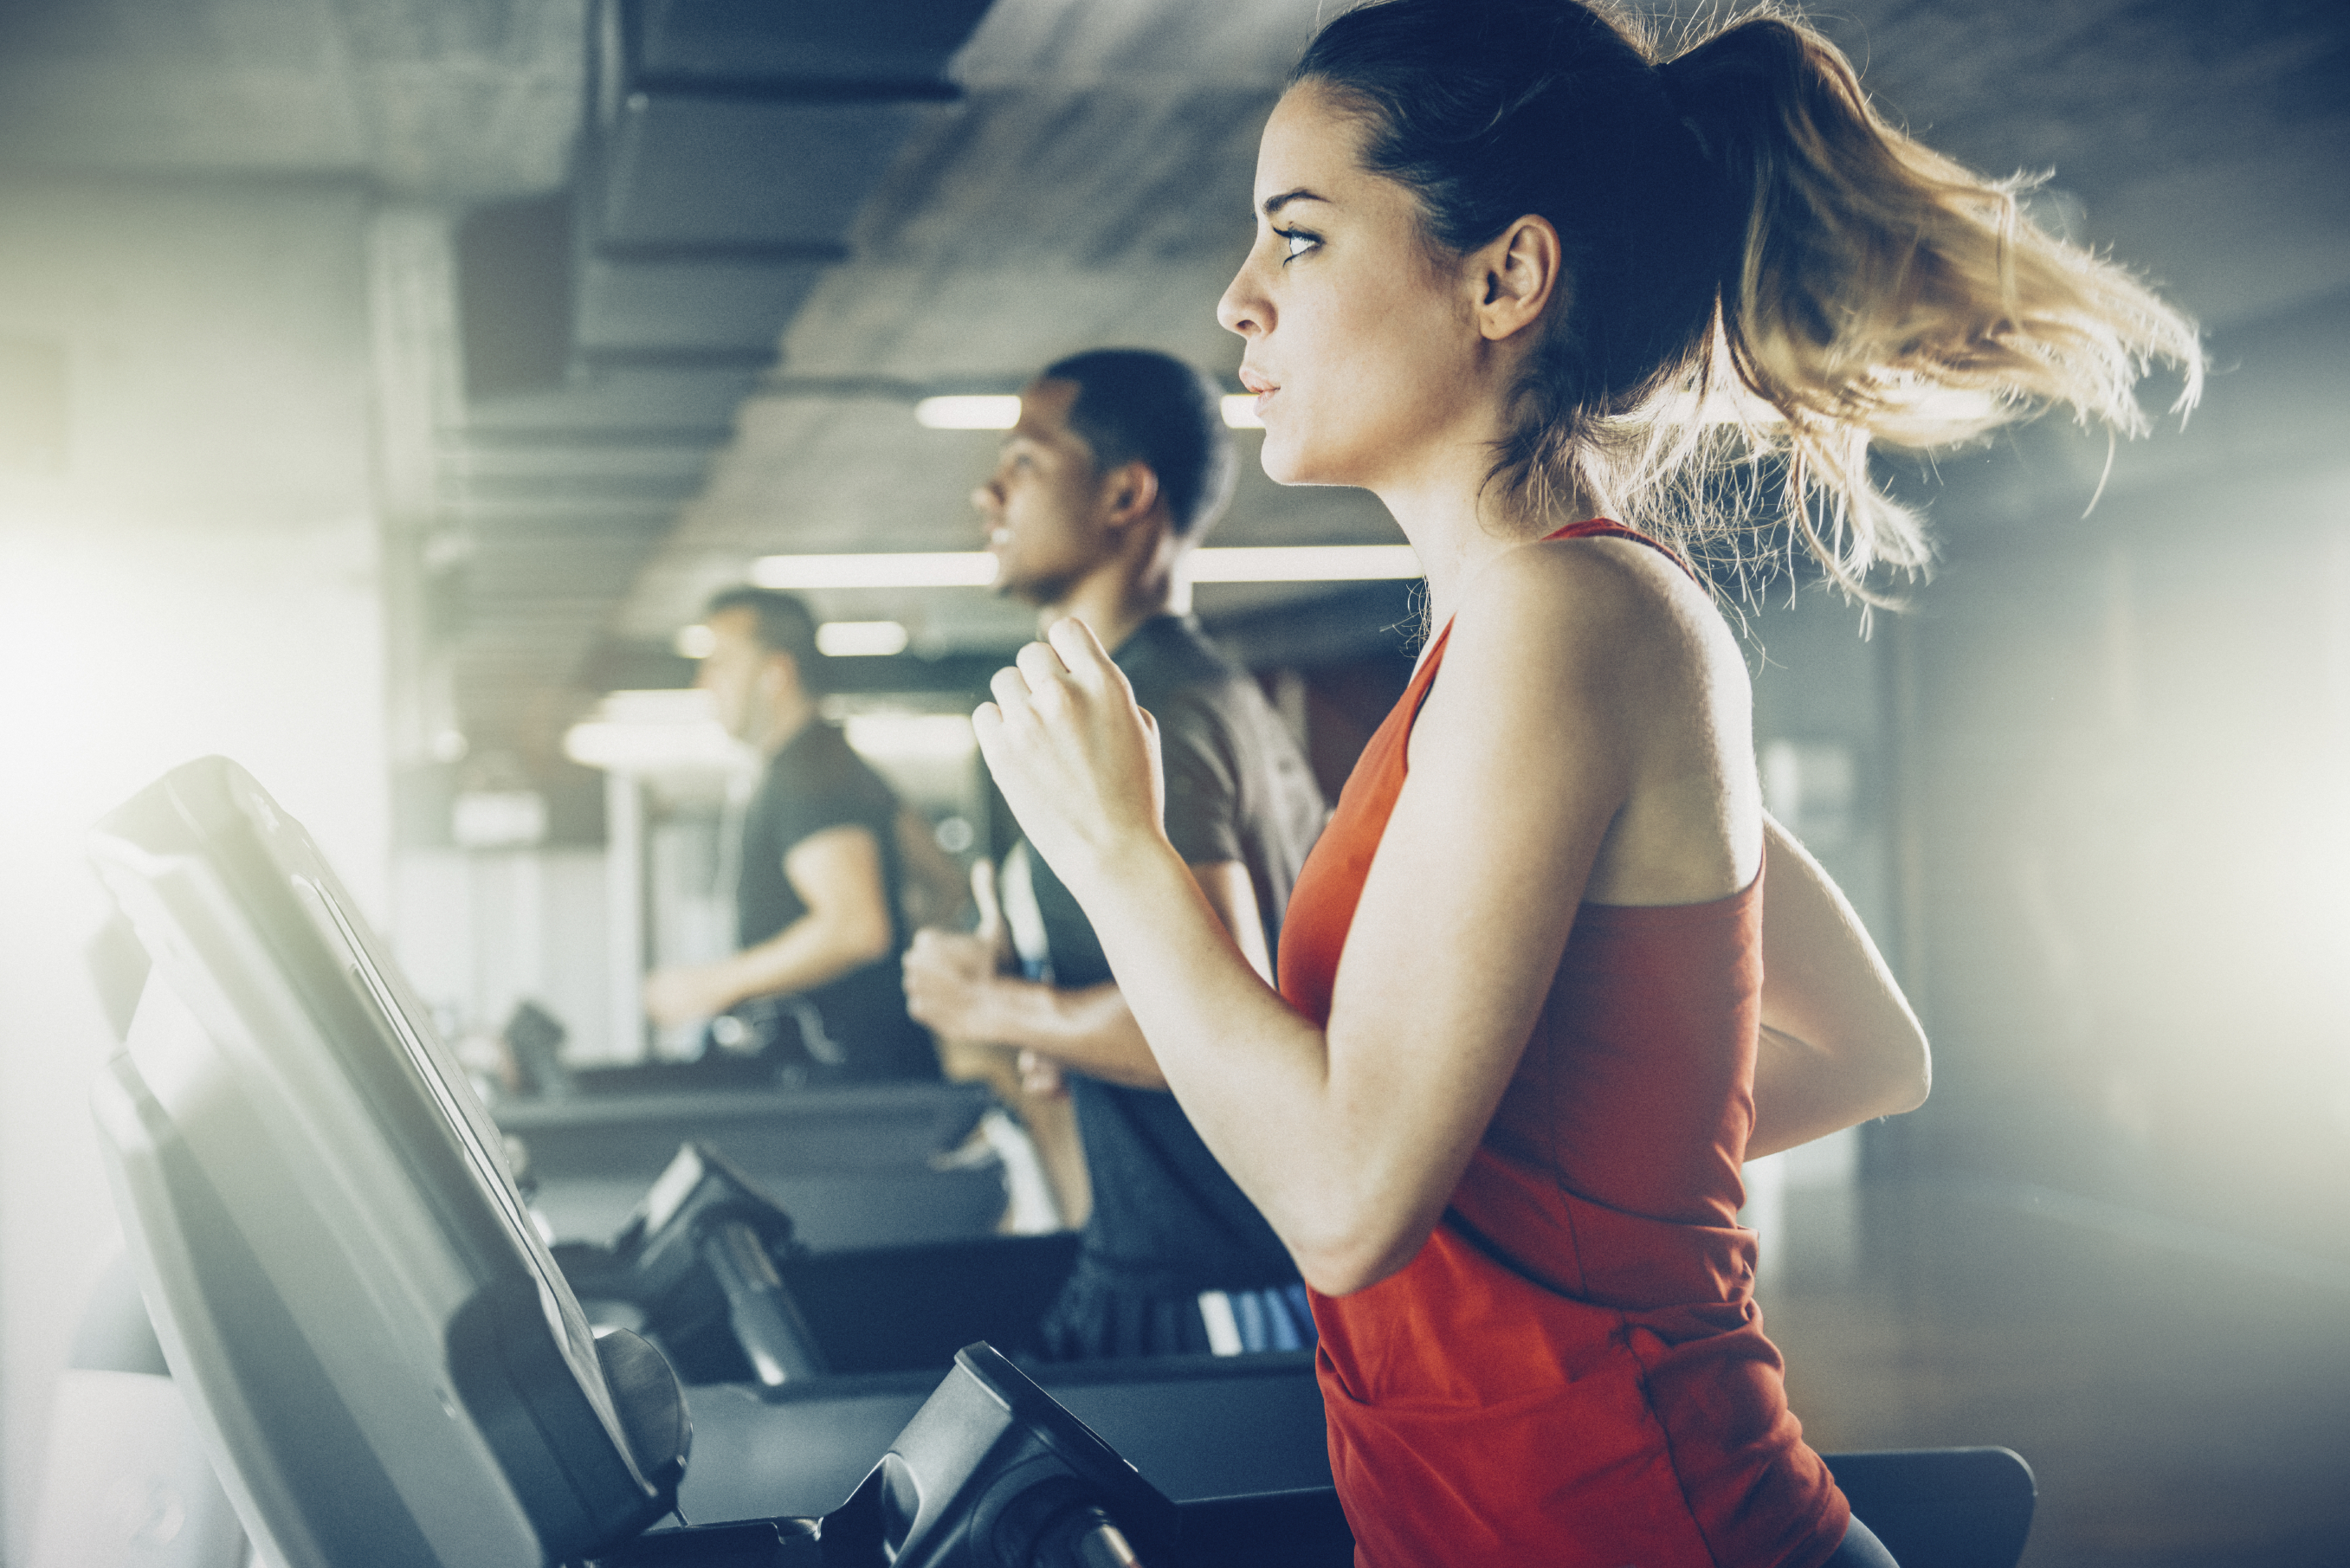 Treadmill & runners at a gym setting